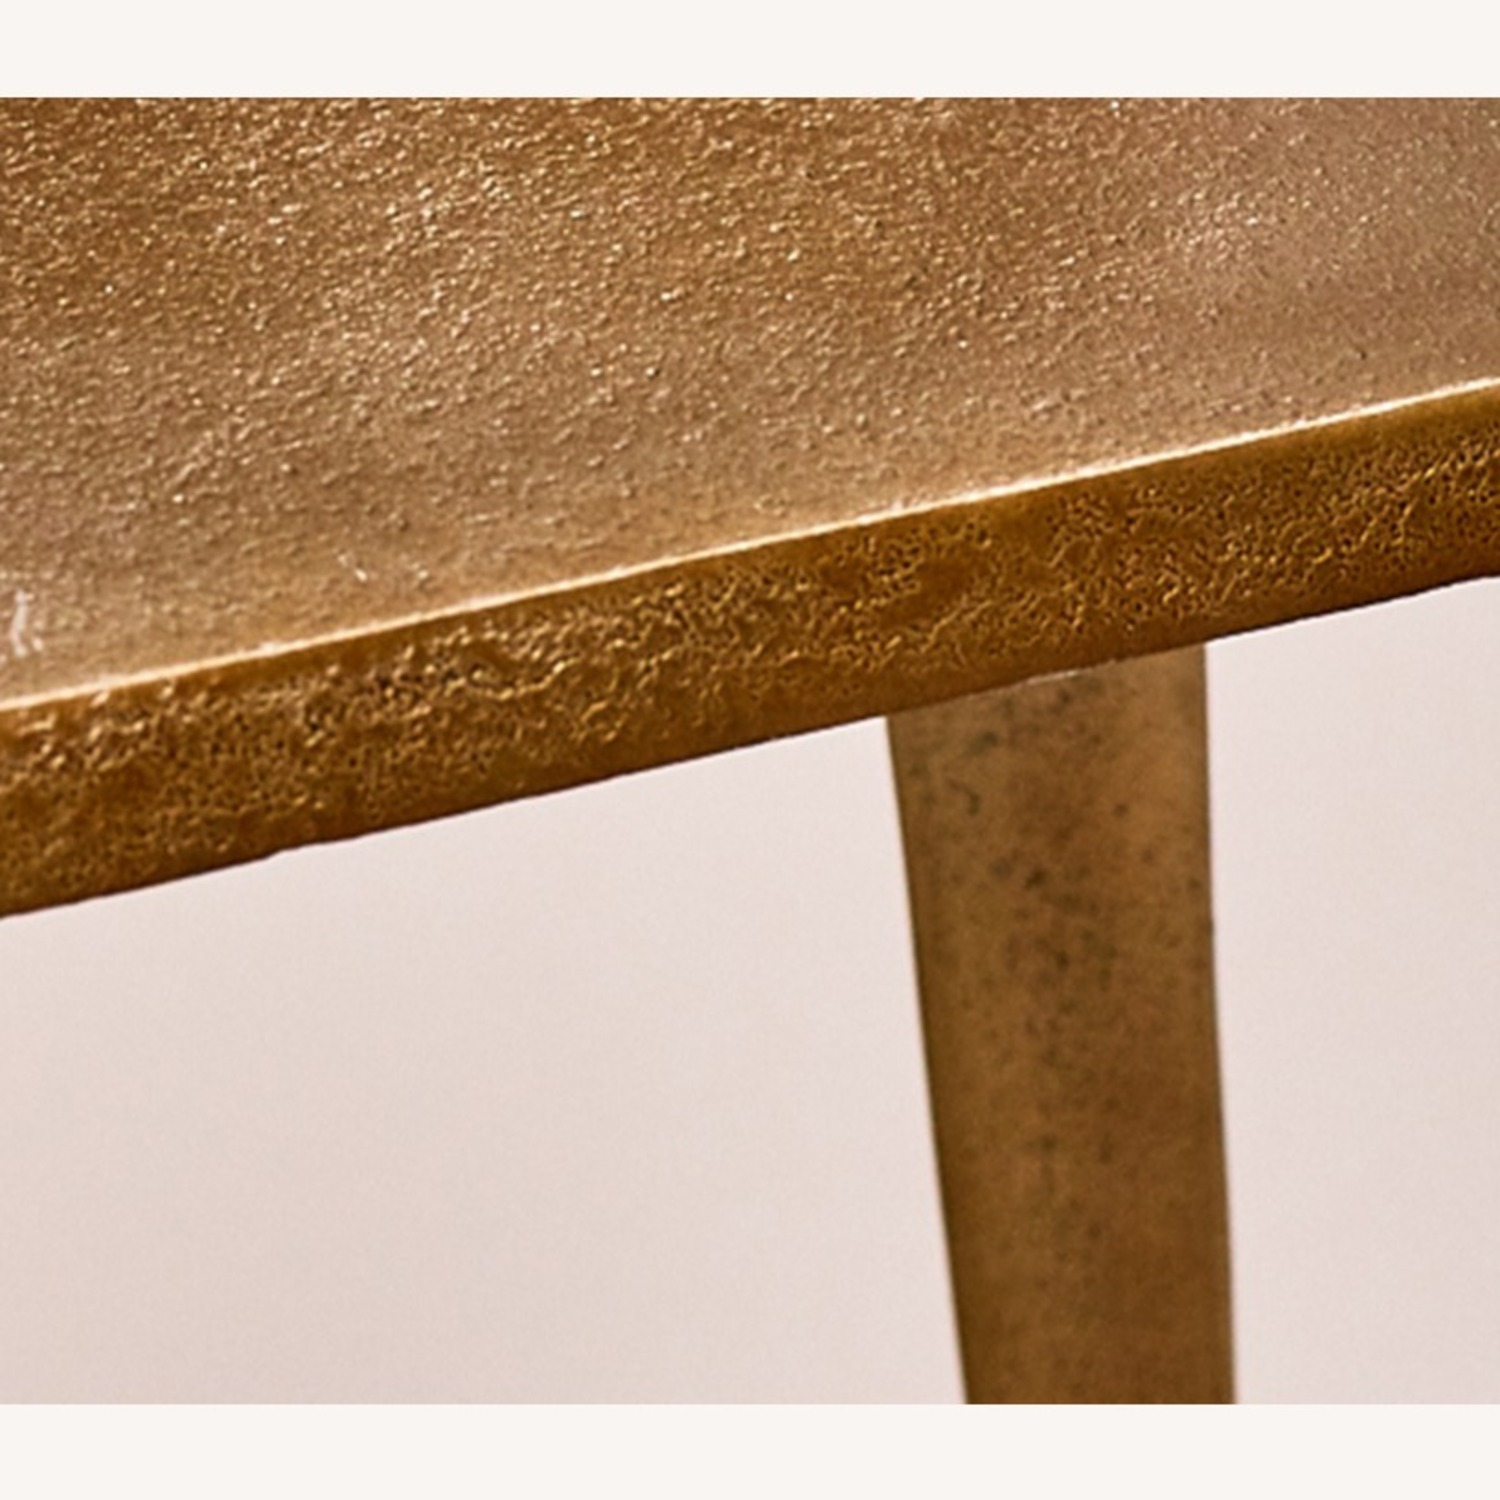 Four Hands Vireo Side Table - image-2